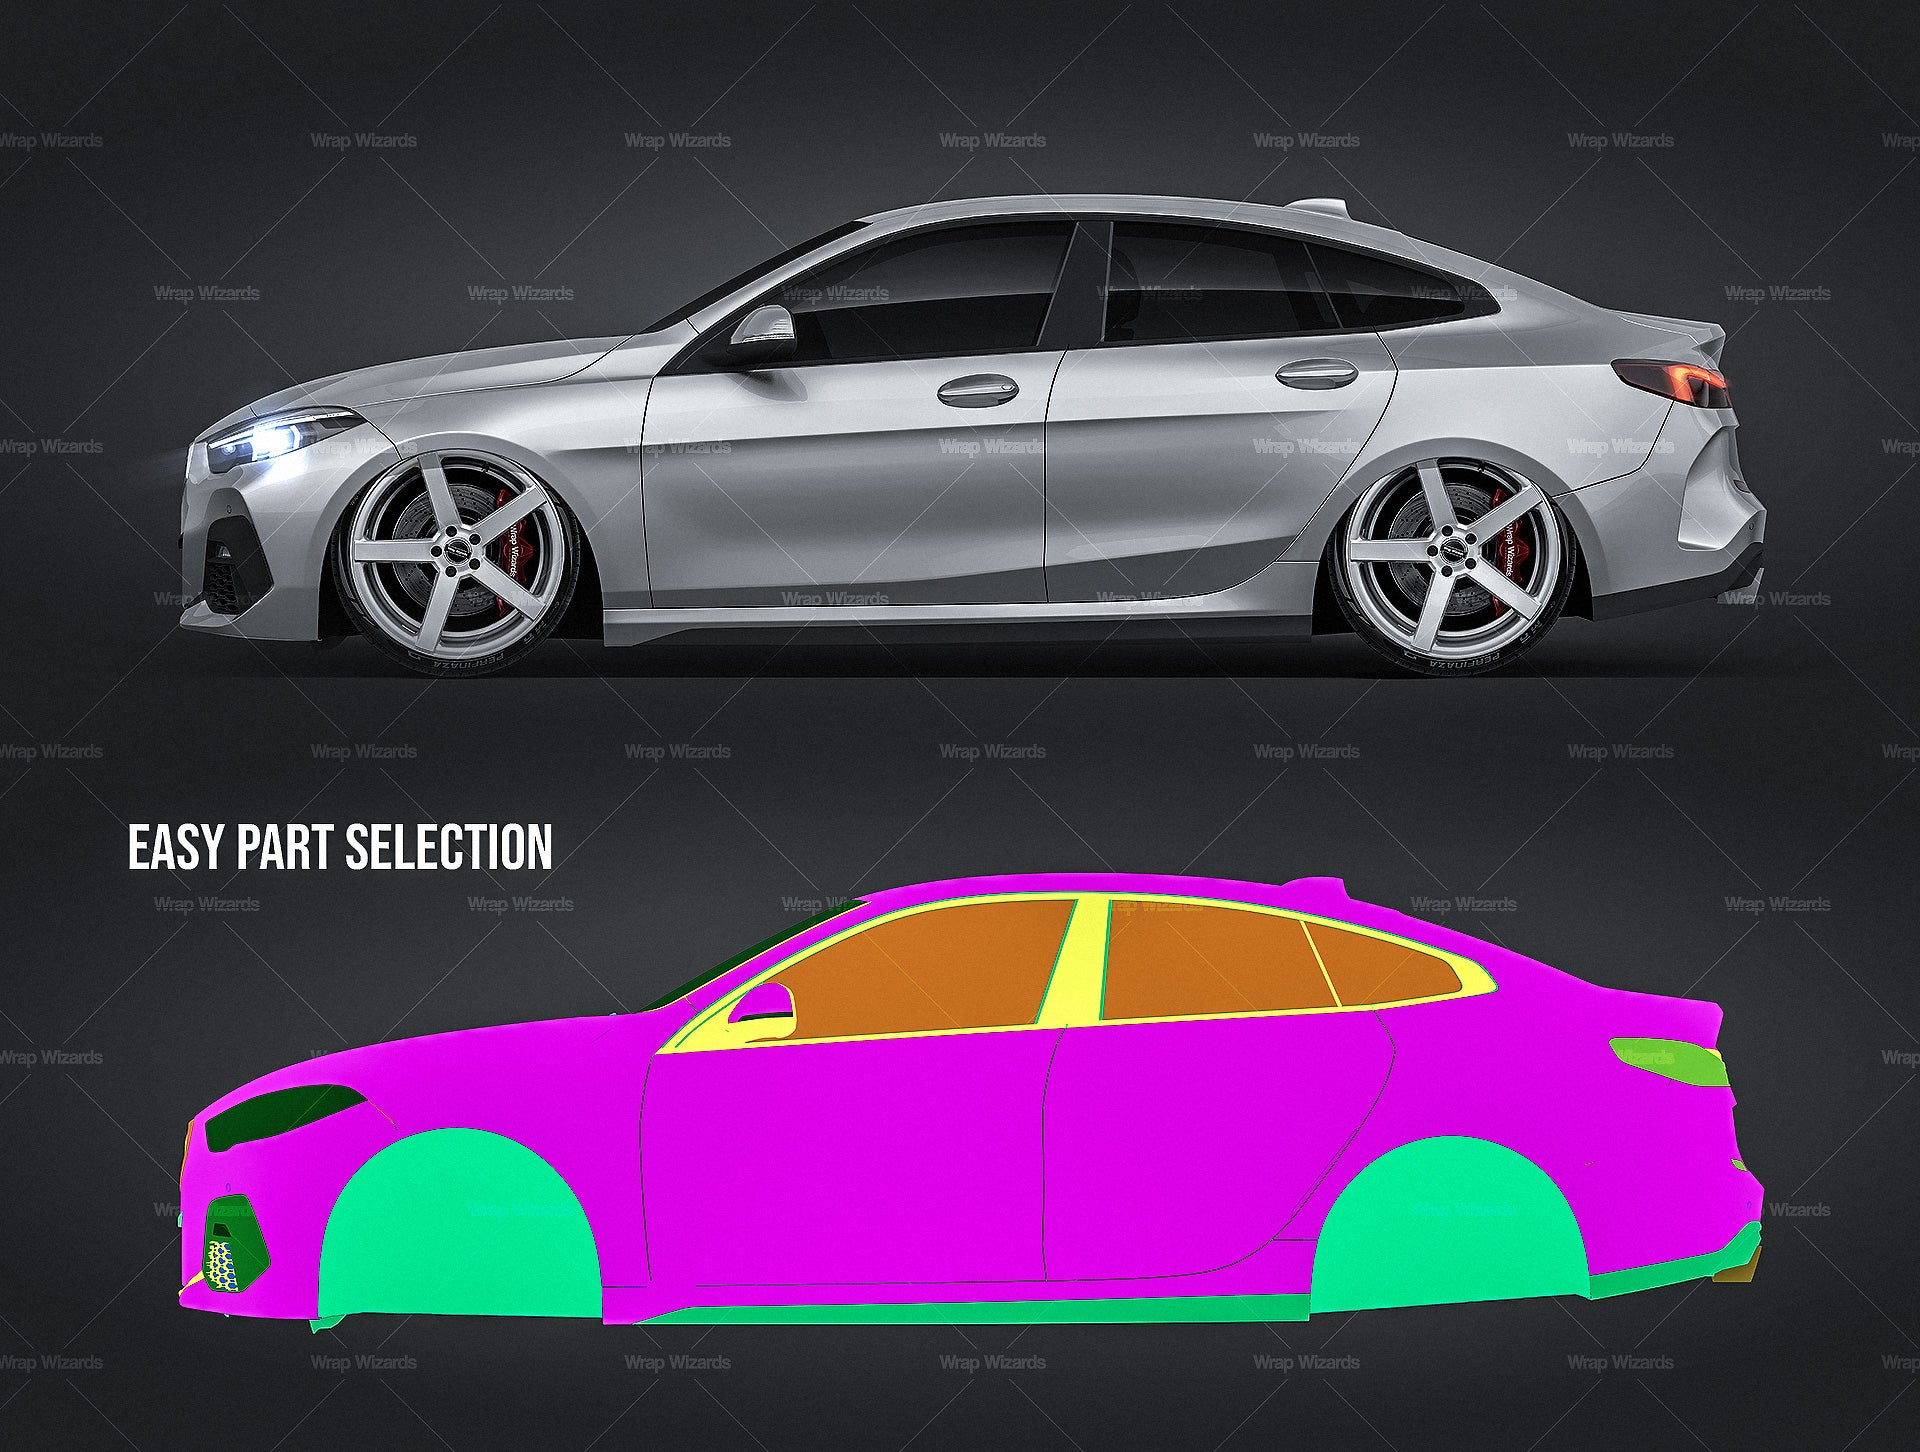 BMW 2 Series Gran Coupe 2020 all sides Car Mockup Template.psd